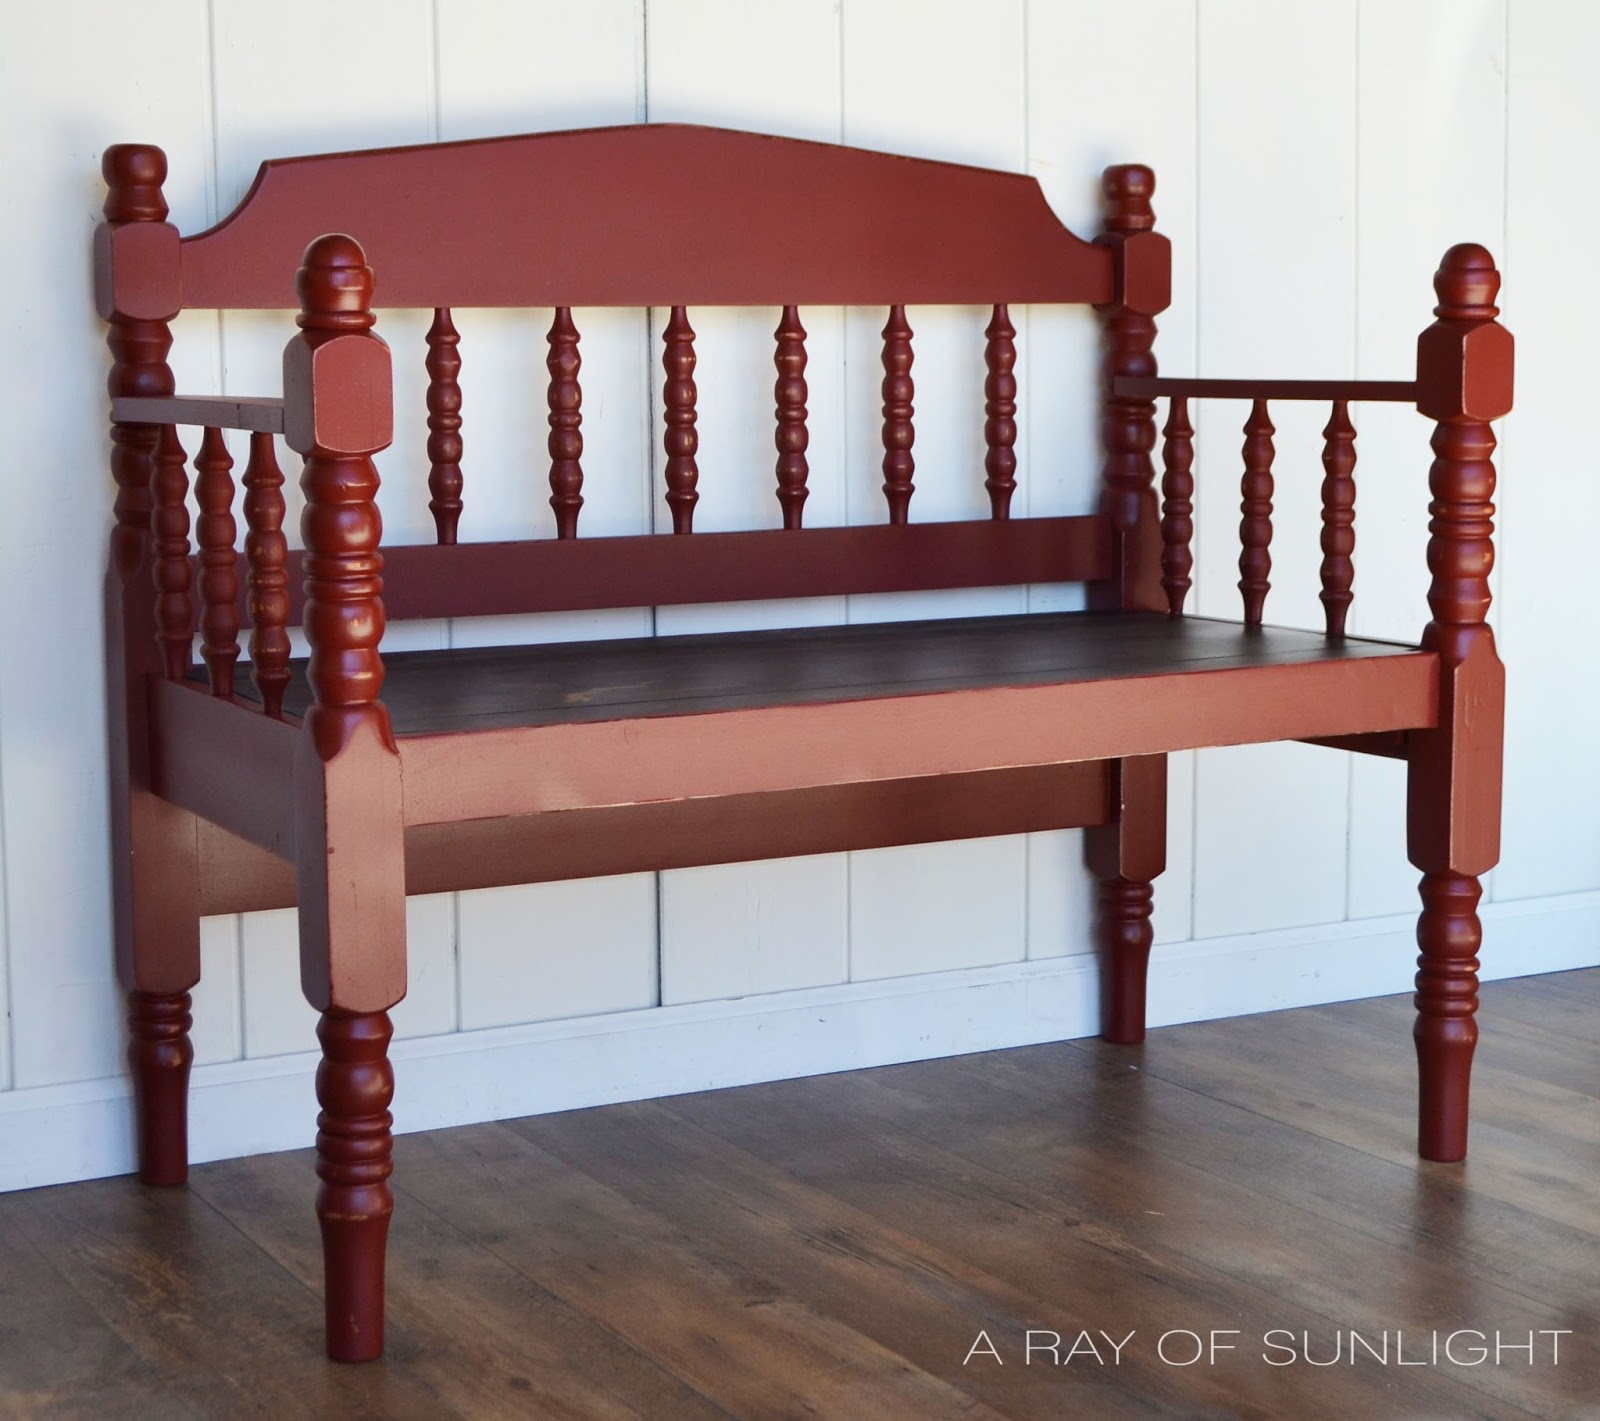 The Adorable Upcycled Red Bench Makeover - A Ray of Sunlight on roof finishes, plumbing finishes, outdoor finishes, house paint finishes, industrial finishes, nichiha finishes,